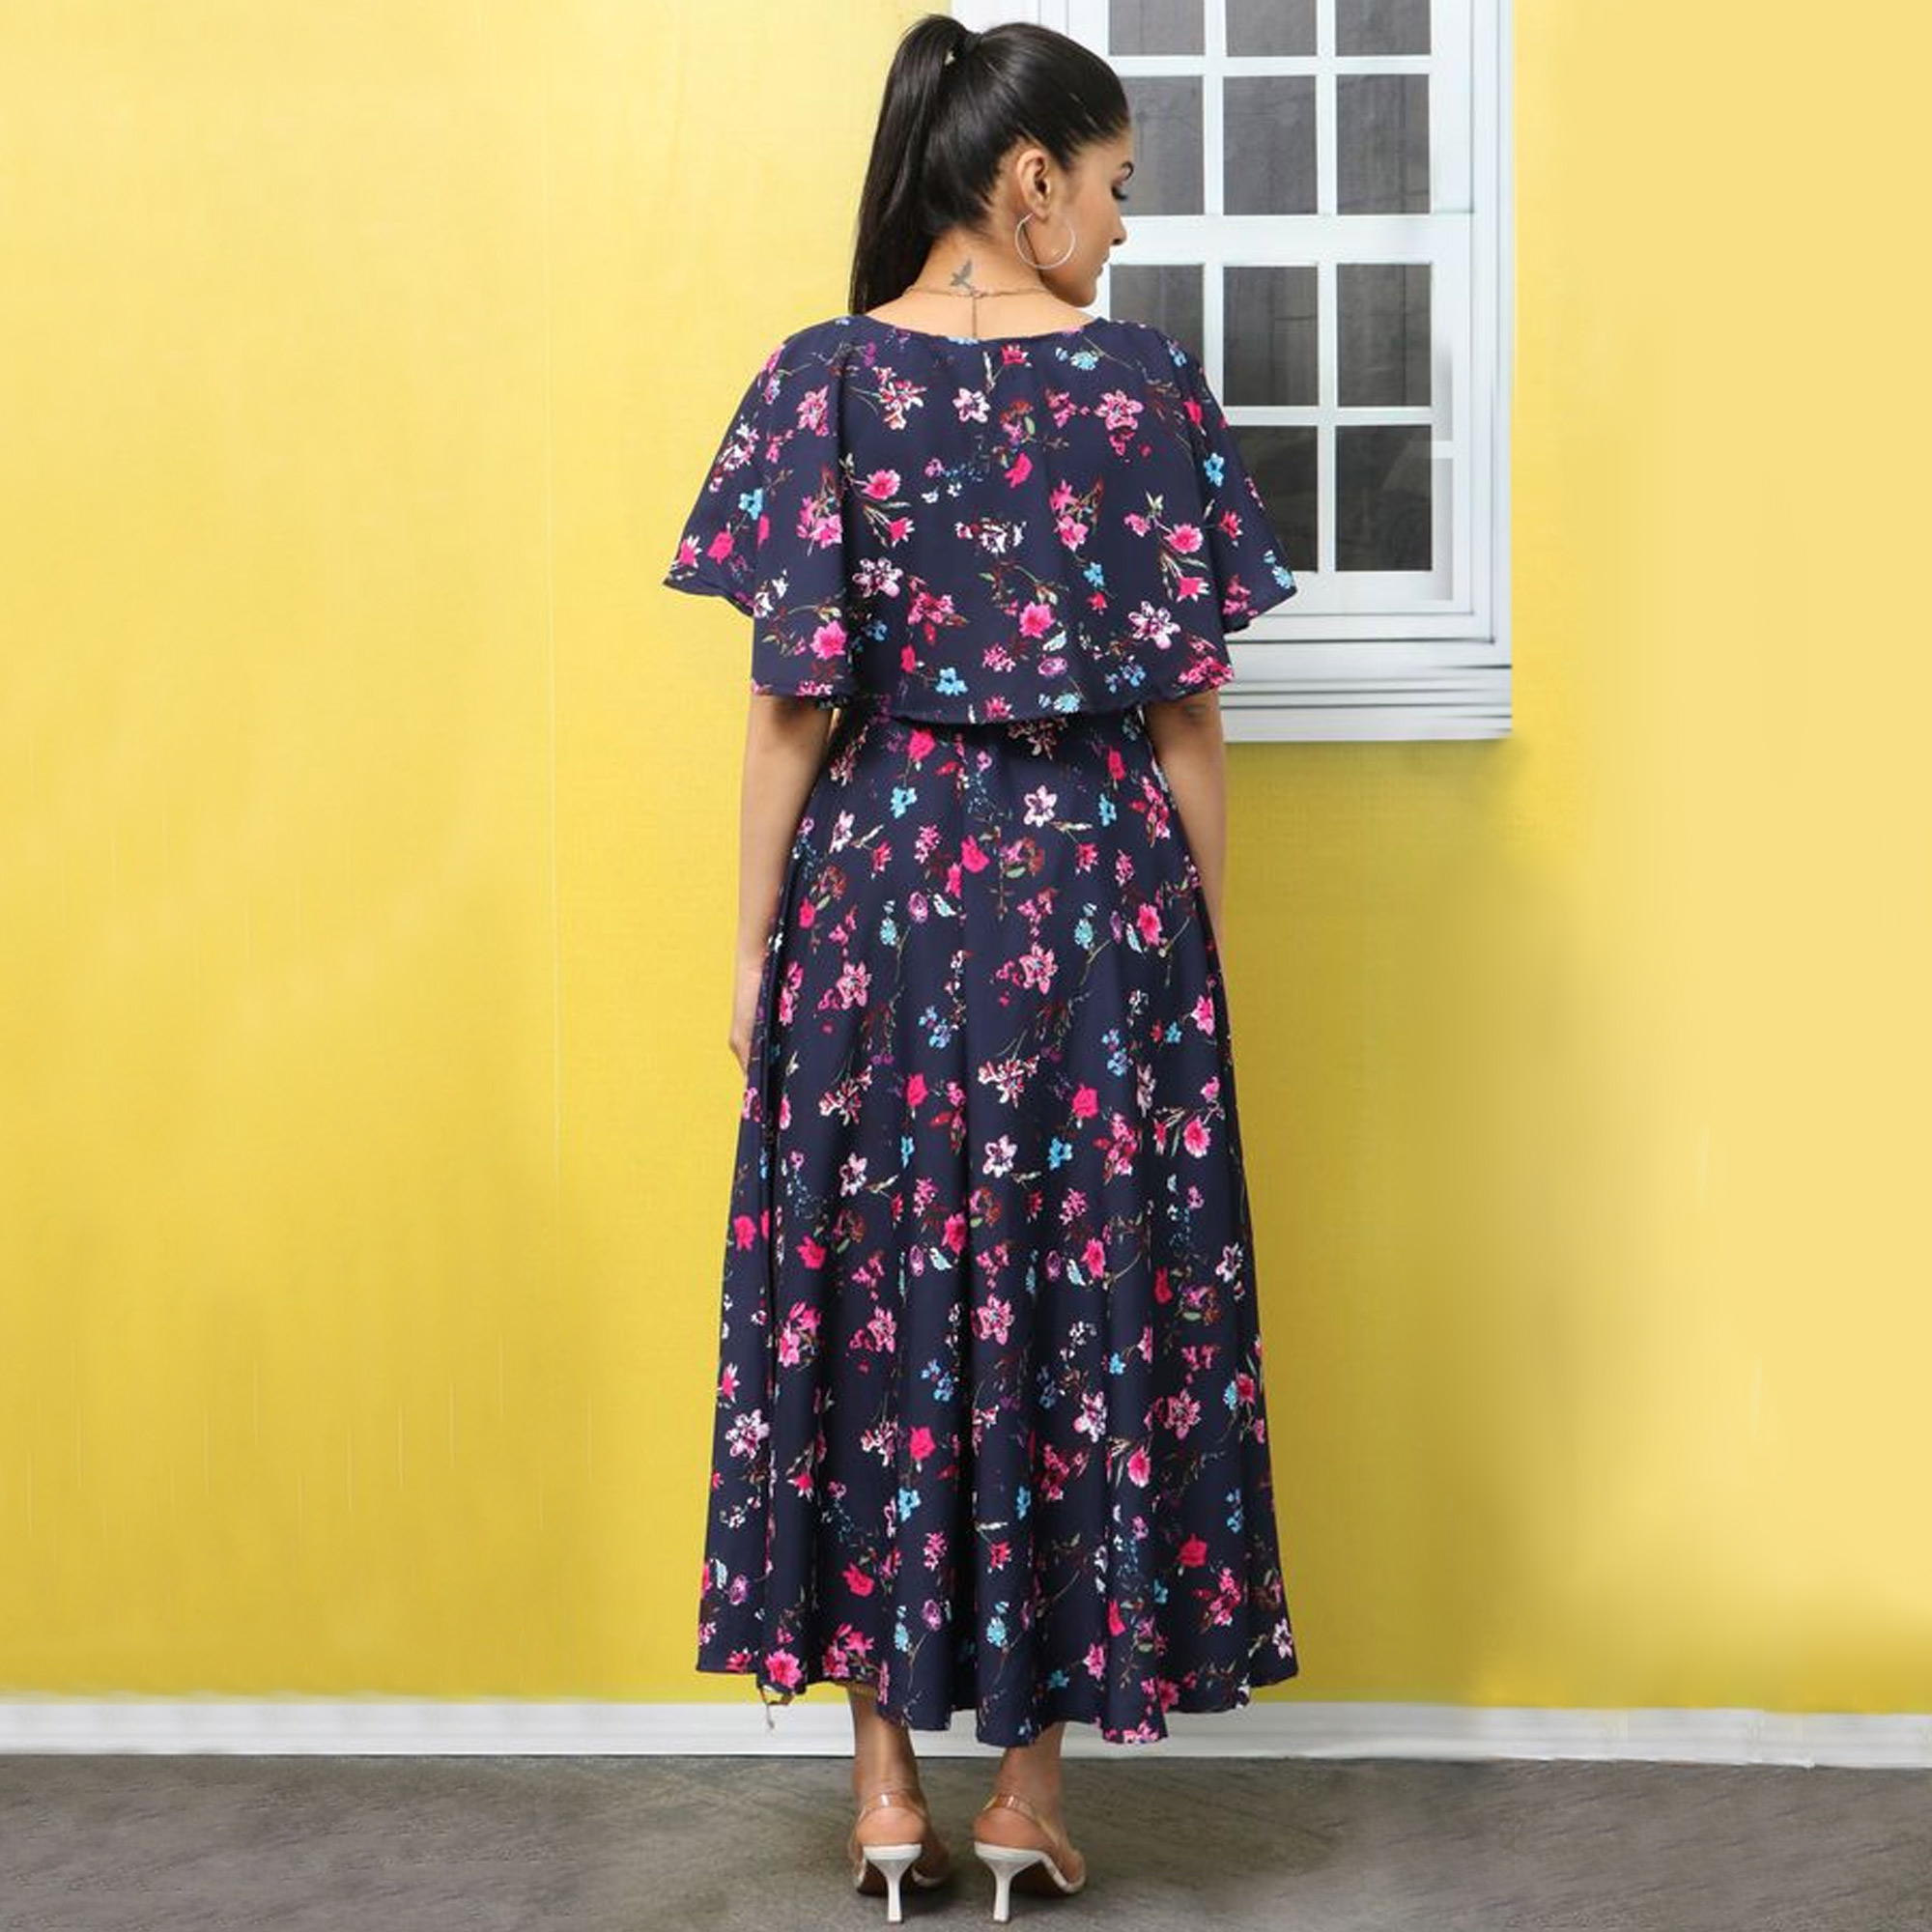 Desirable Dark Blue Colored Partywear Cape Sleeve Floral Printed Crepe Maxi Dress